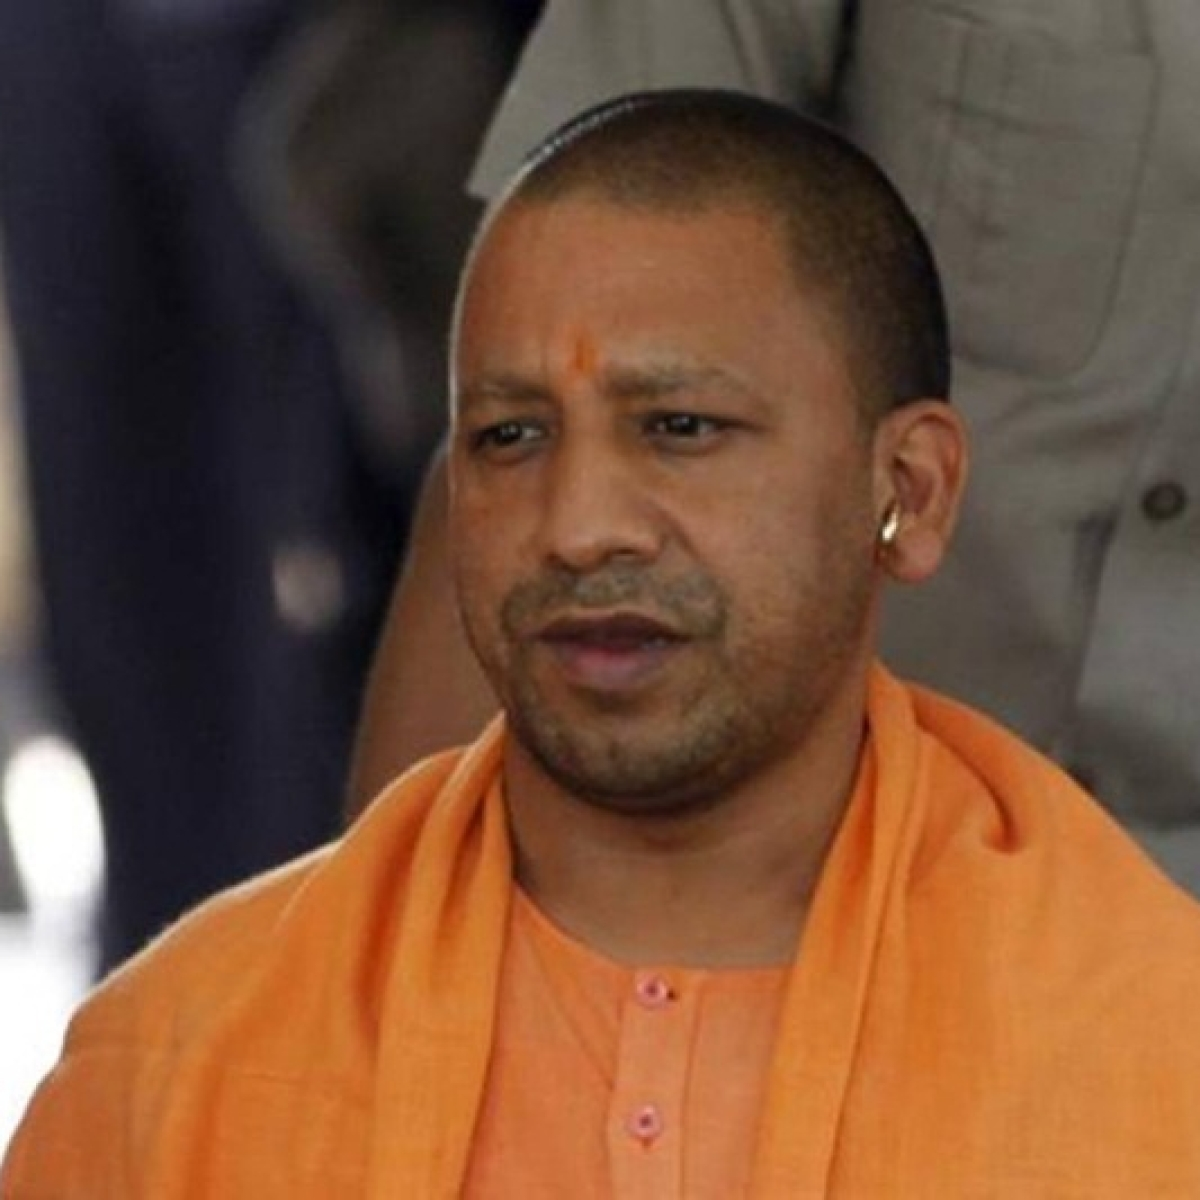 COVID-19 in Uttar Pradesh: Allahabad HC directs Yogi Adityanath govt to consider lockdown in worst-affected districts